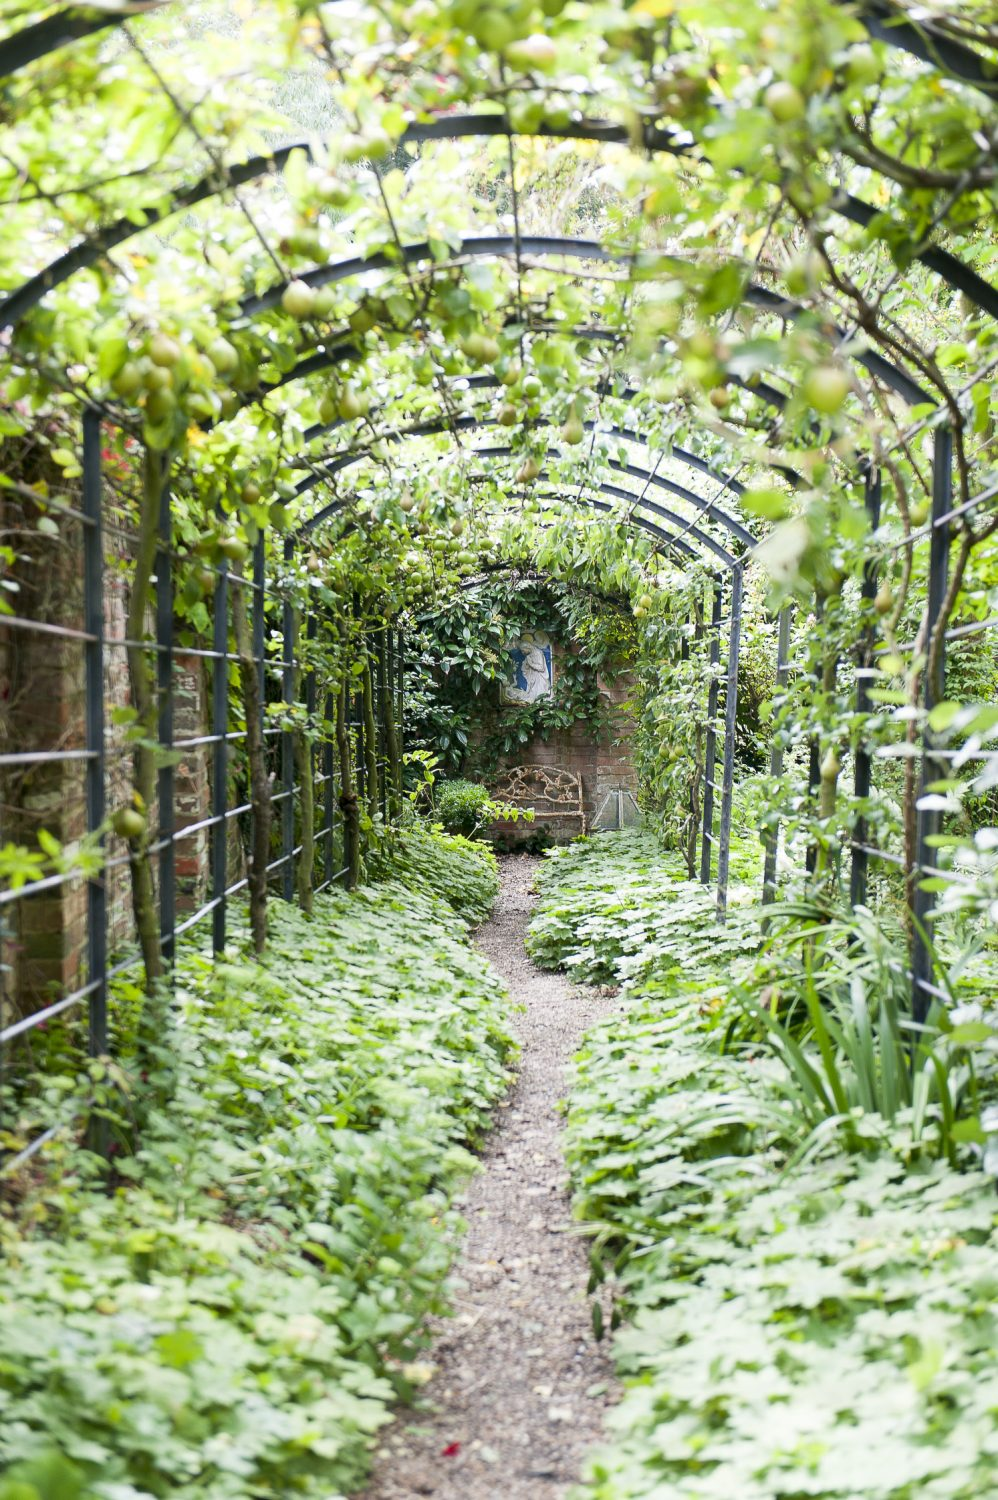 A fruit pergola leads down to the garden